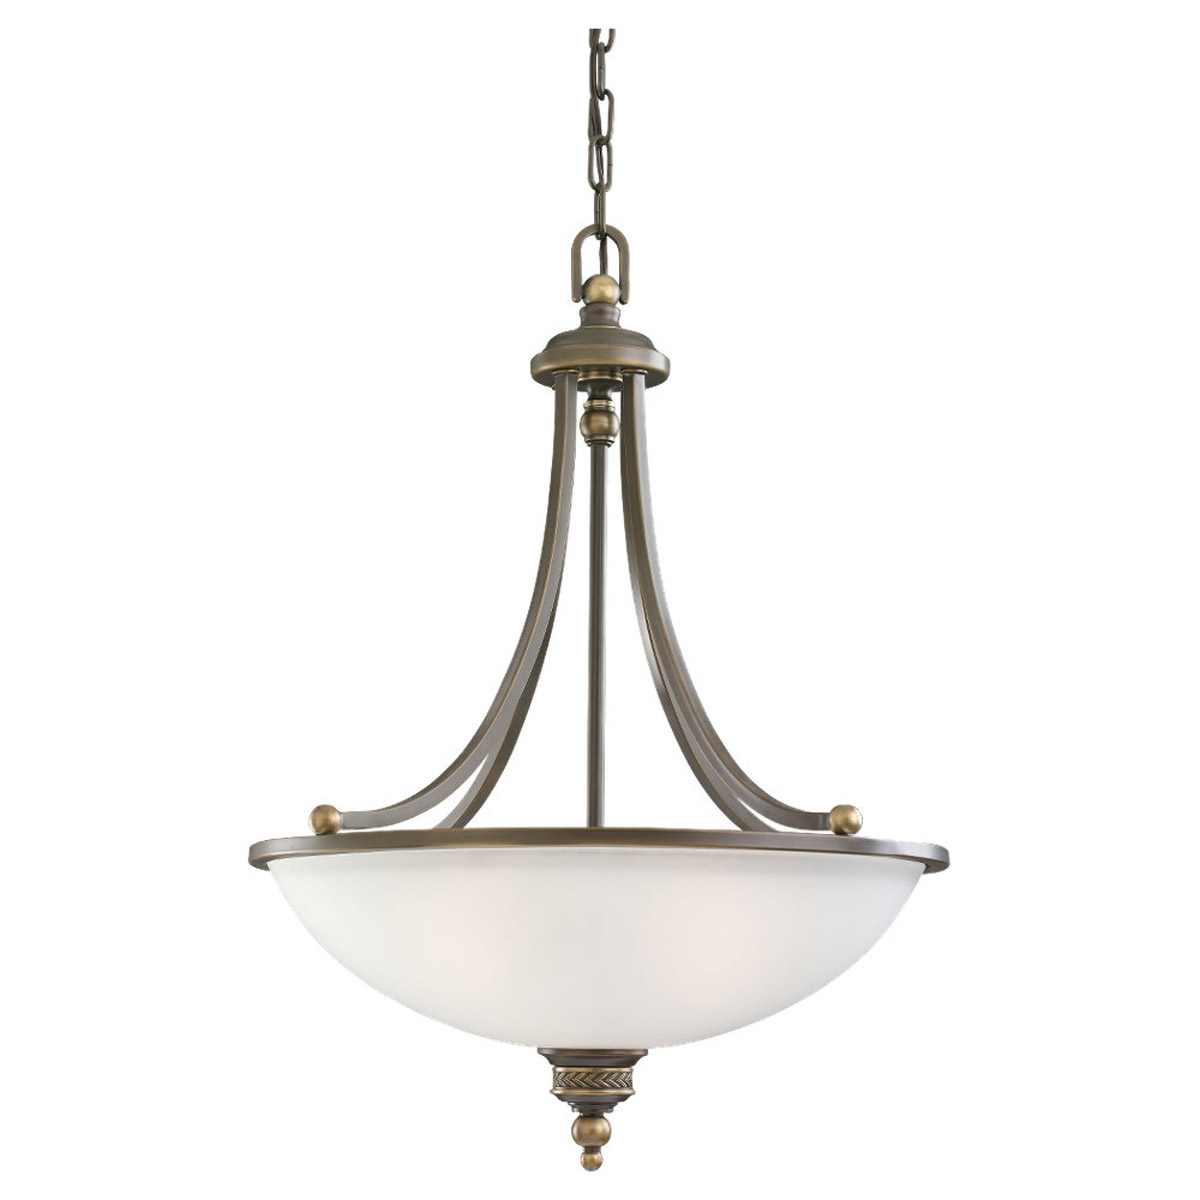 Sea Gull Lighting Laurel Leaf 3 Light Pendant in Heirloom Bronze 65351-782